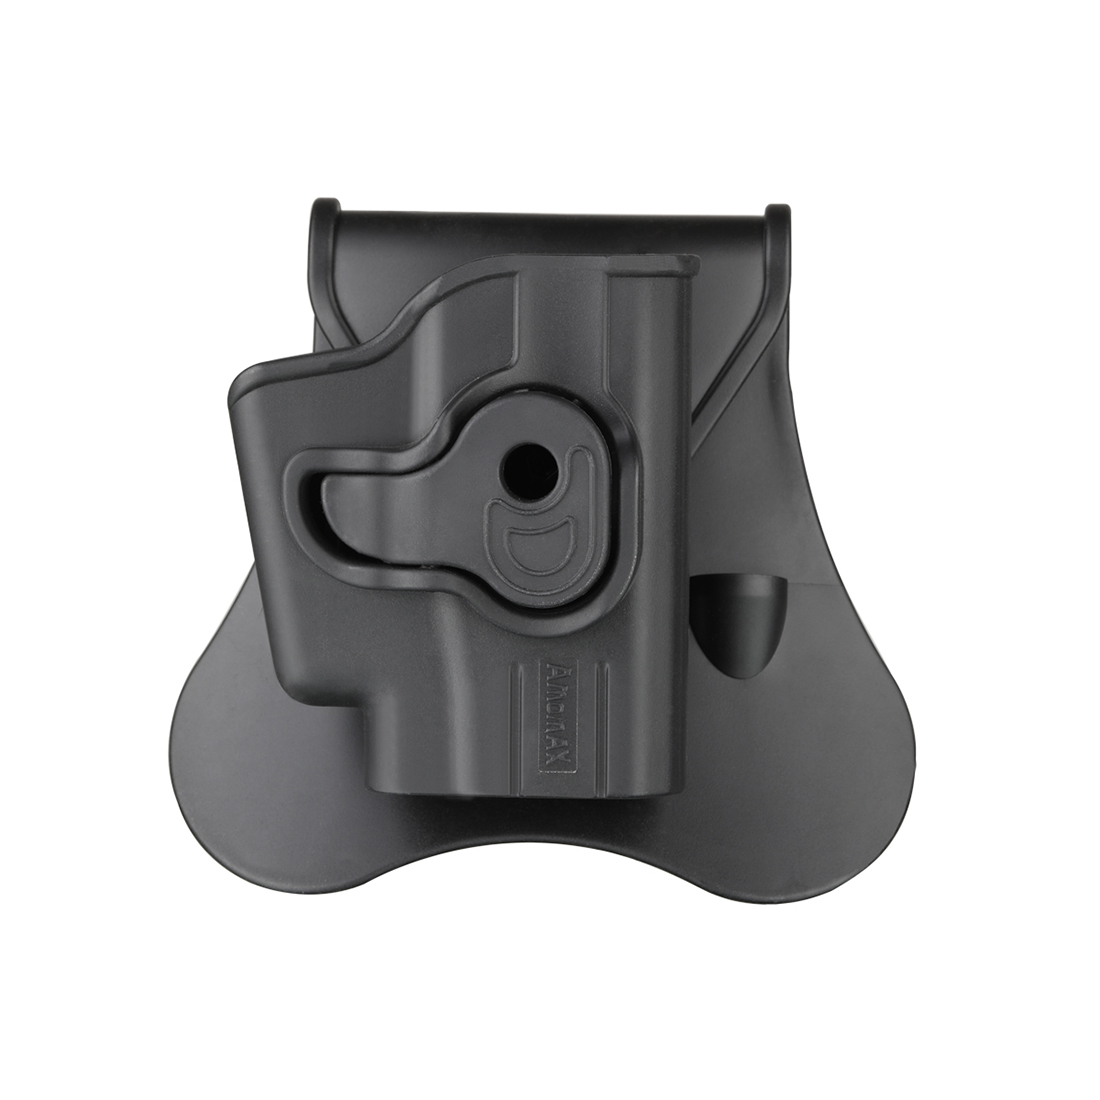 Amomax Adjustable Tactical Holster For Ruger LCP/Taurus TCP/KEL-TEC P-3AT - Right-handed Black Standard Only With Waist Plate